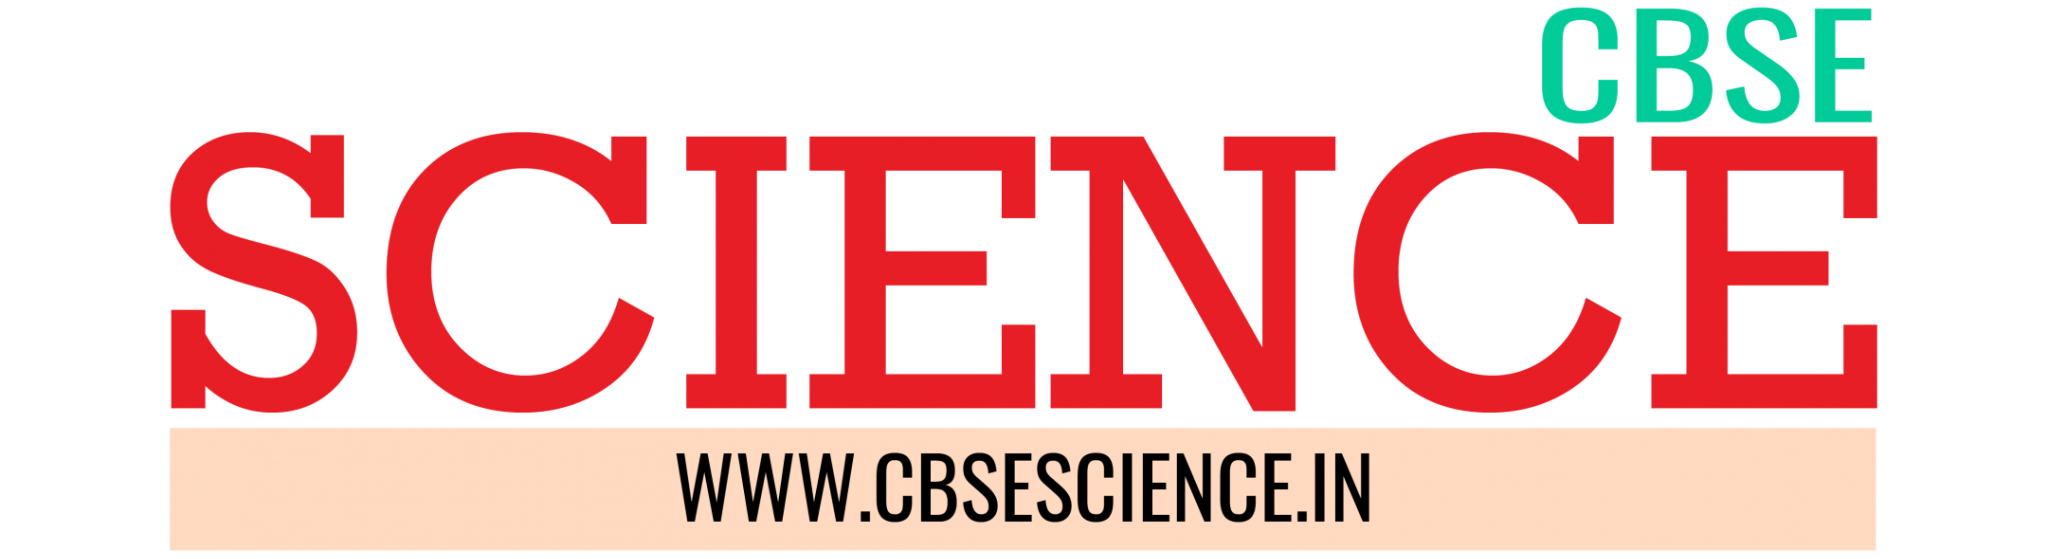 CBSE SCIENCE